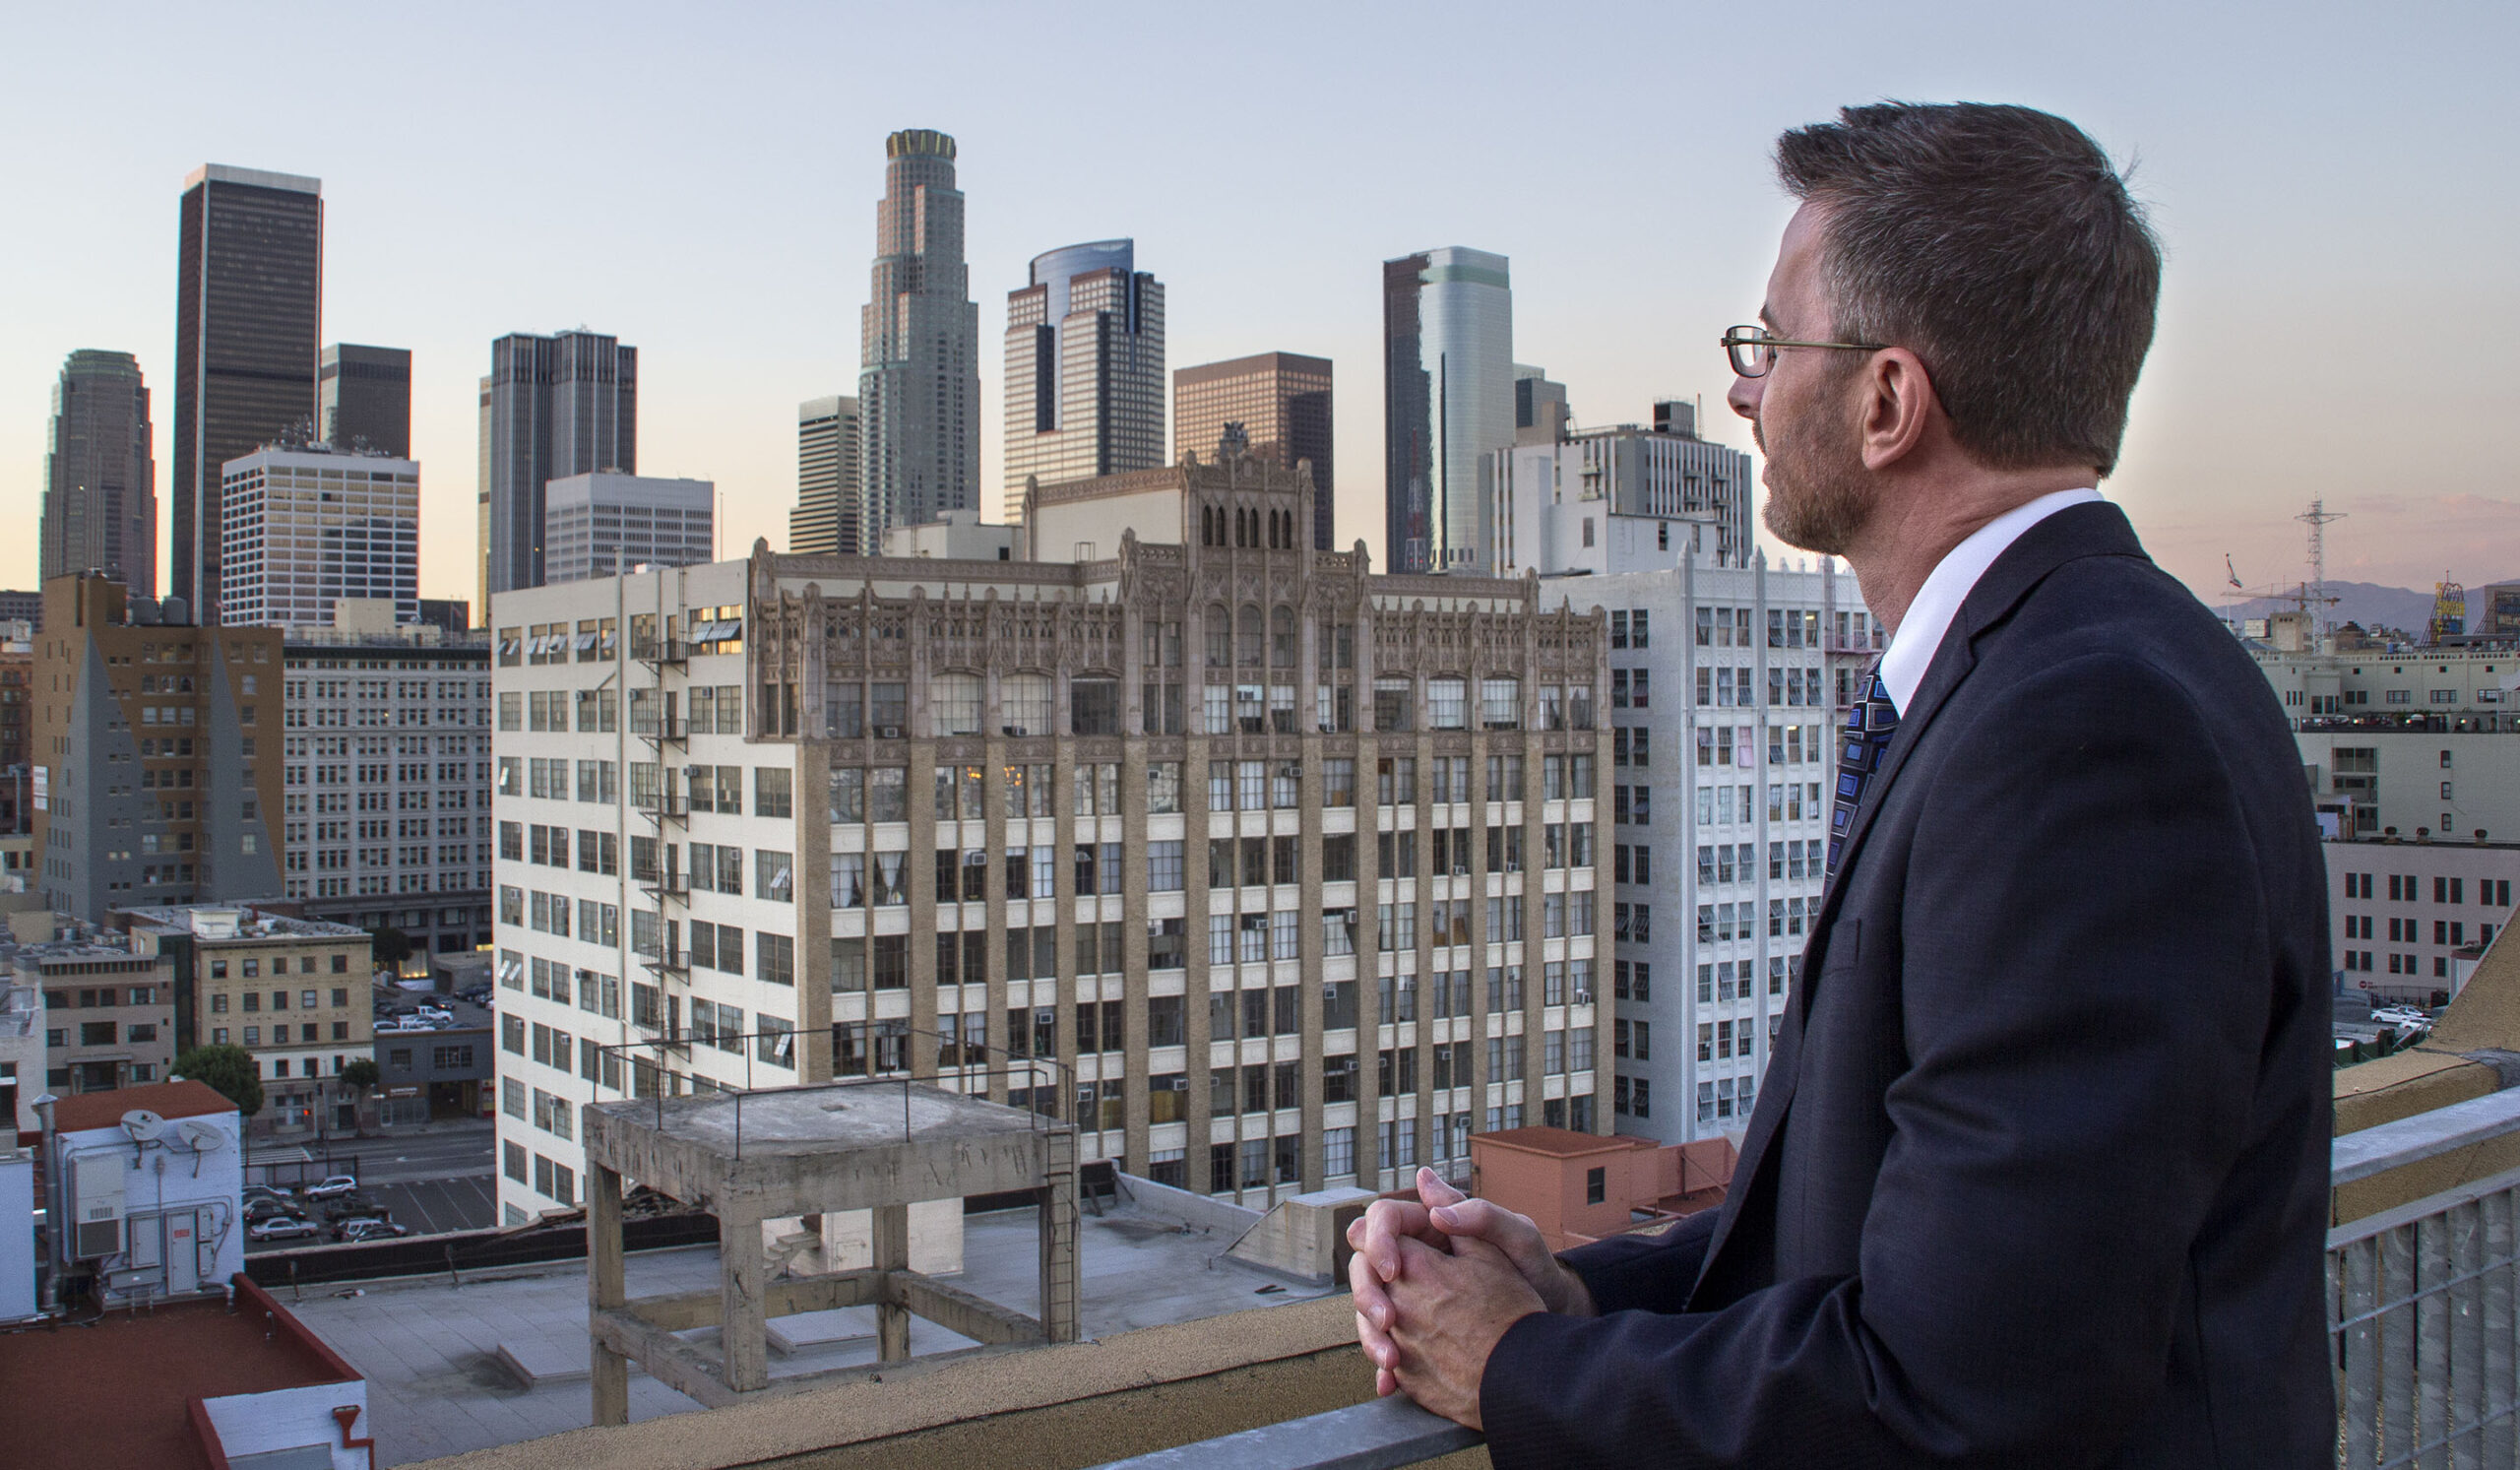 Condominium manager looking at the city skyline. The man is dressed in a suit. The view is during blue hour after sunset at the historic core of the city.